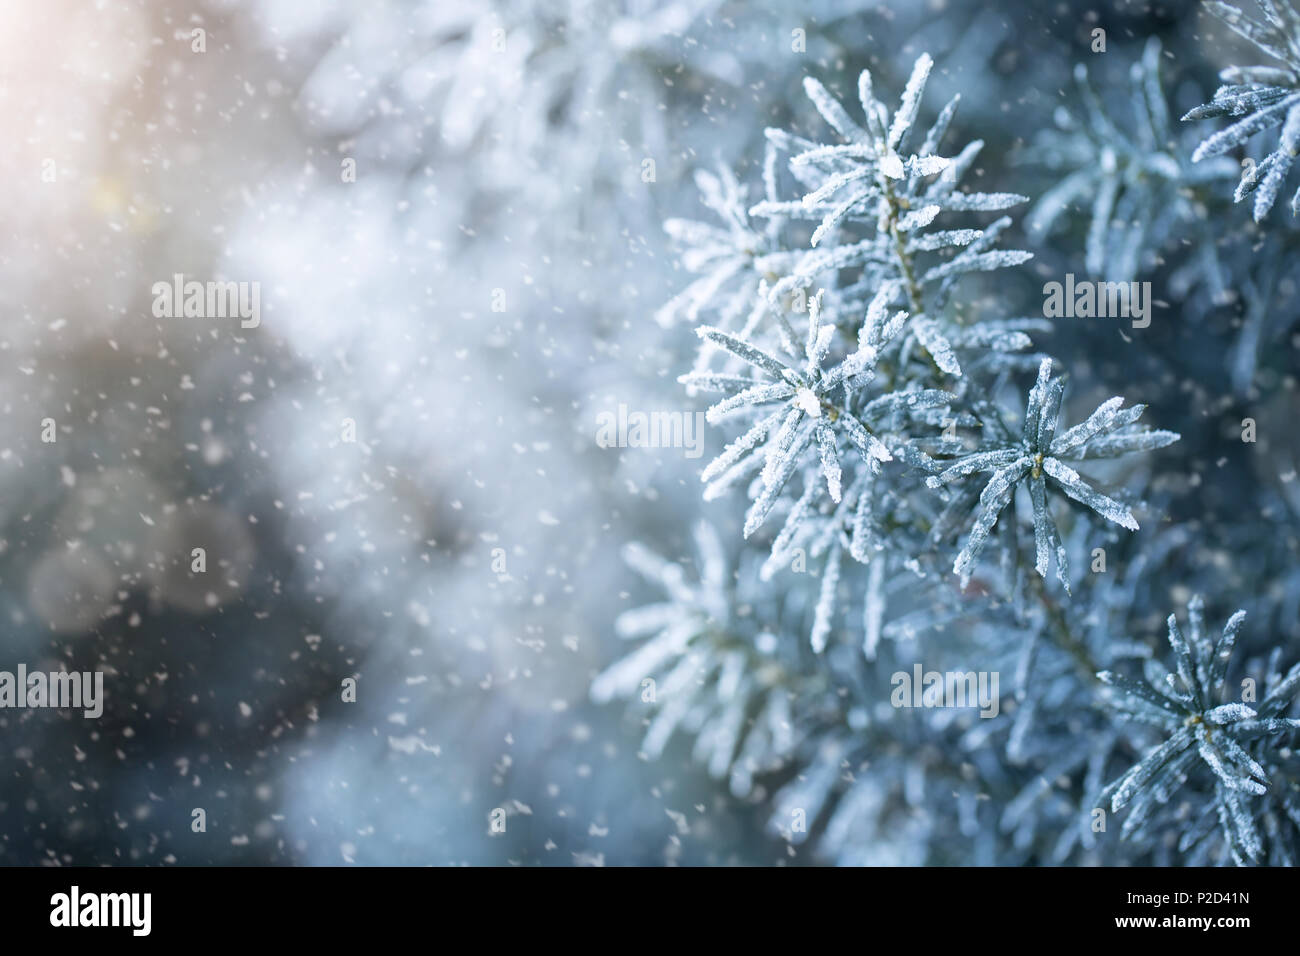 Winter background with copy space - Stock Image